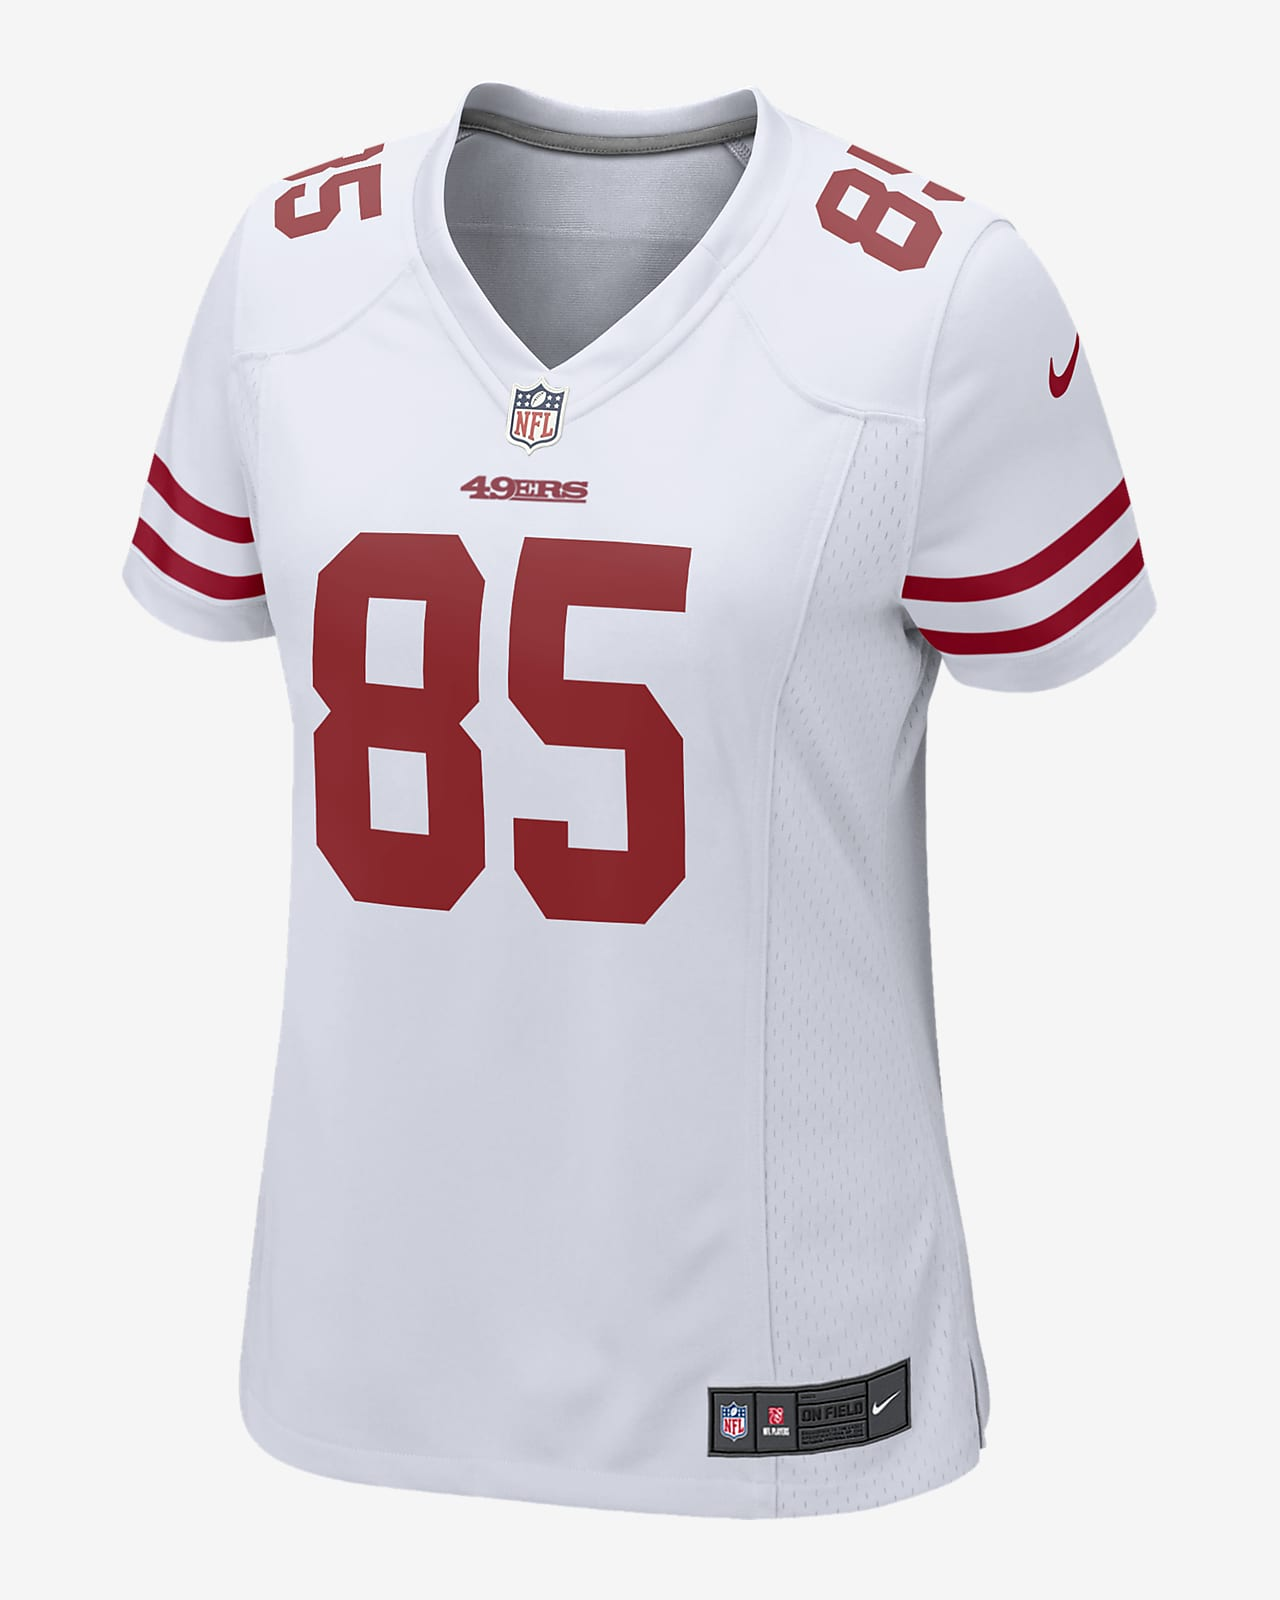 NFL San Francisco 49ers (George Kittle) Women's Game Football Jersey